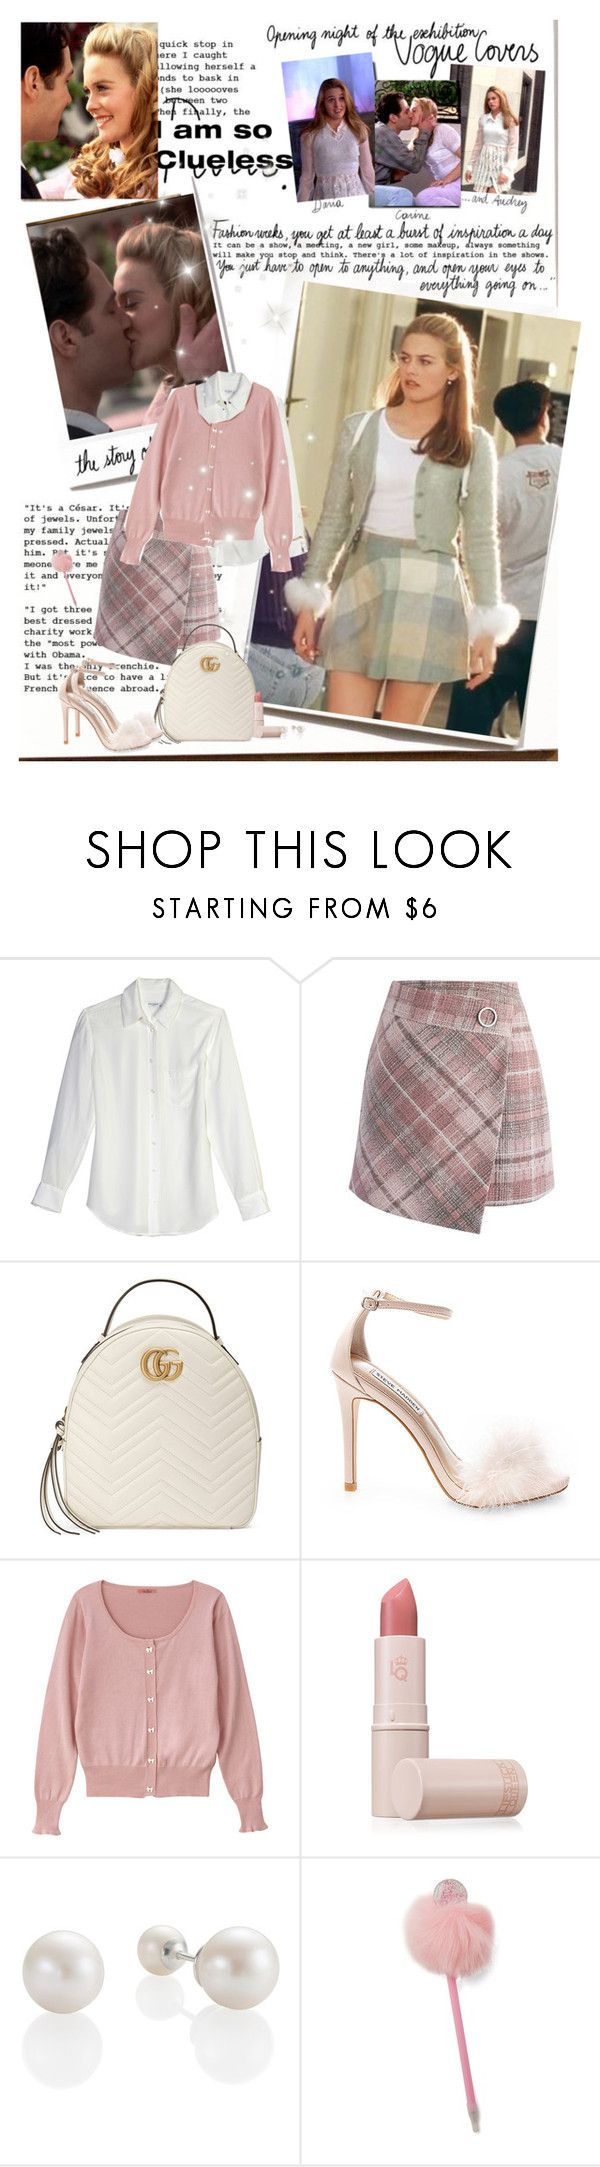 """""""I like Josh"""" by priscilla12 ❤ liked on Polyvore featuring Garance Doré, SilverStone, Equipment, Chicwish, Gucci, Steve Madden, Lipstick Queen, Forever 21 and clueless"""